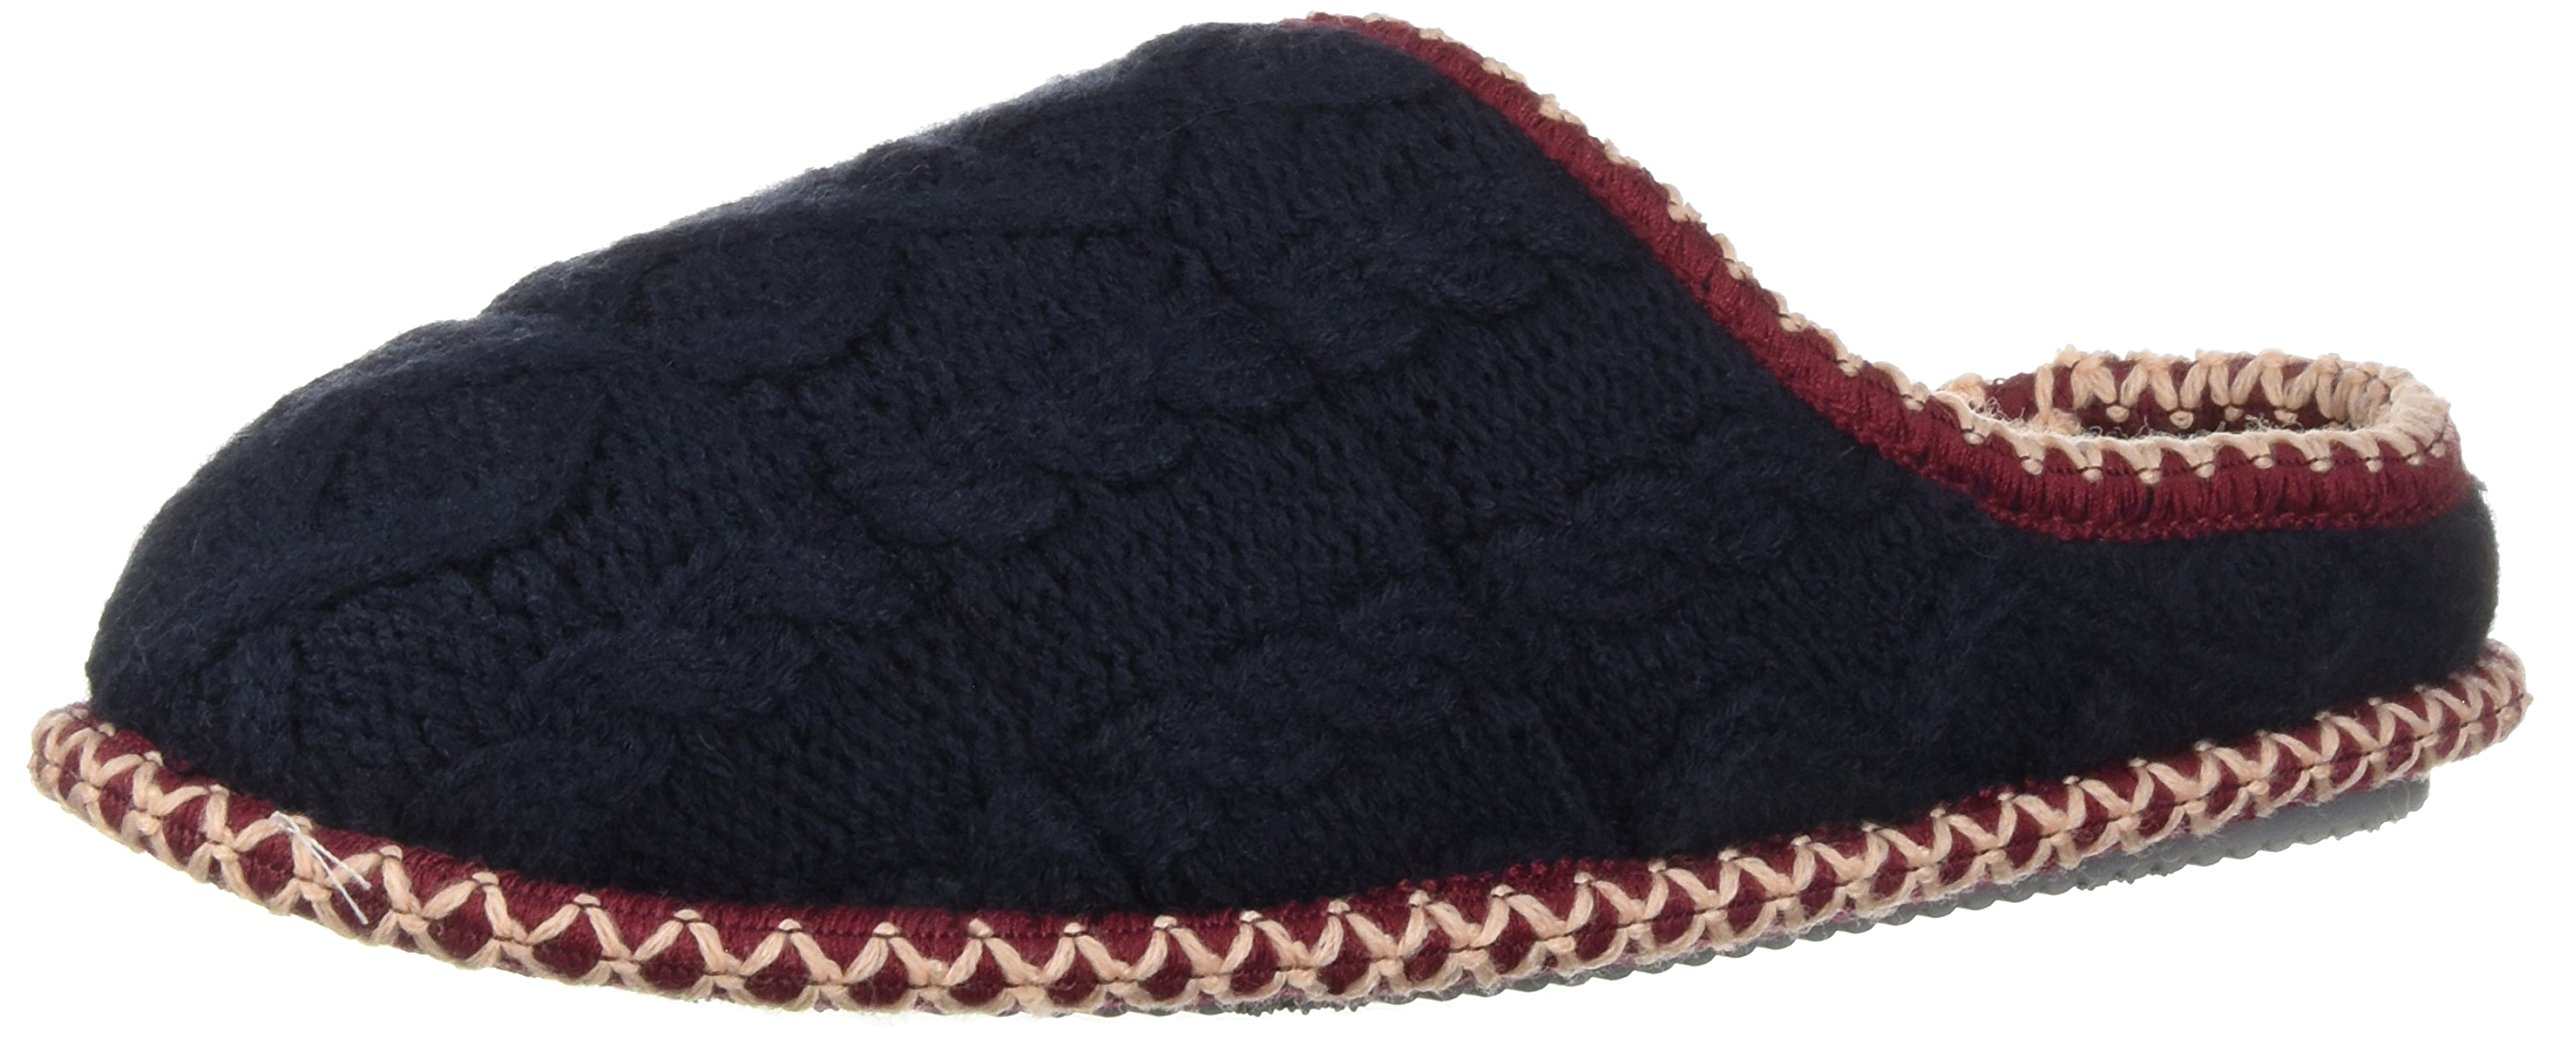 Dearfoams Women's Quilted Cable Knit Clog Slipper, Peacoat, L Regular US